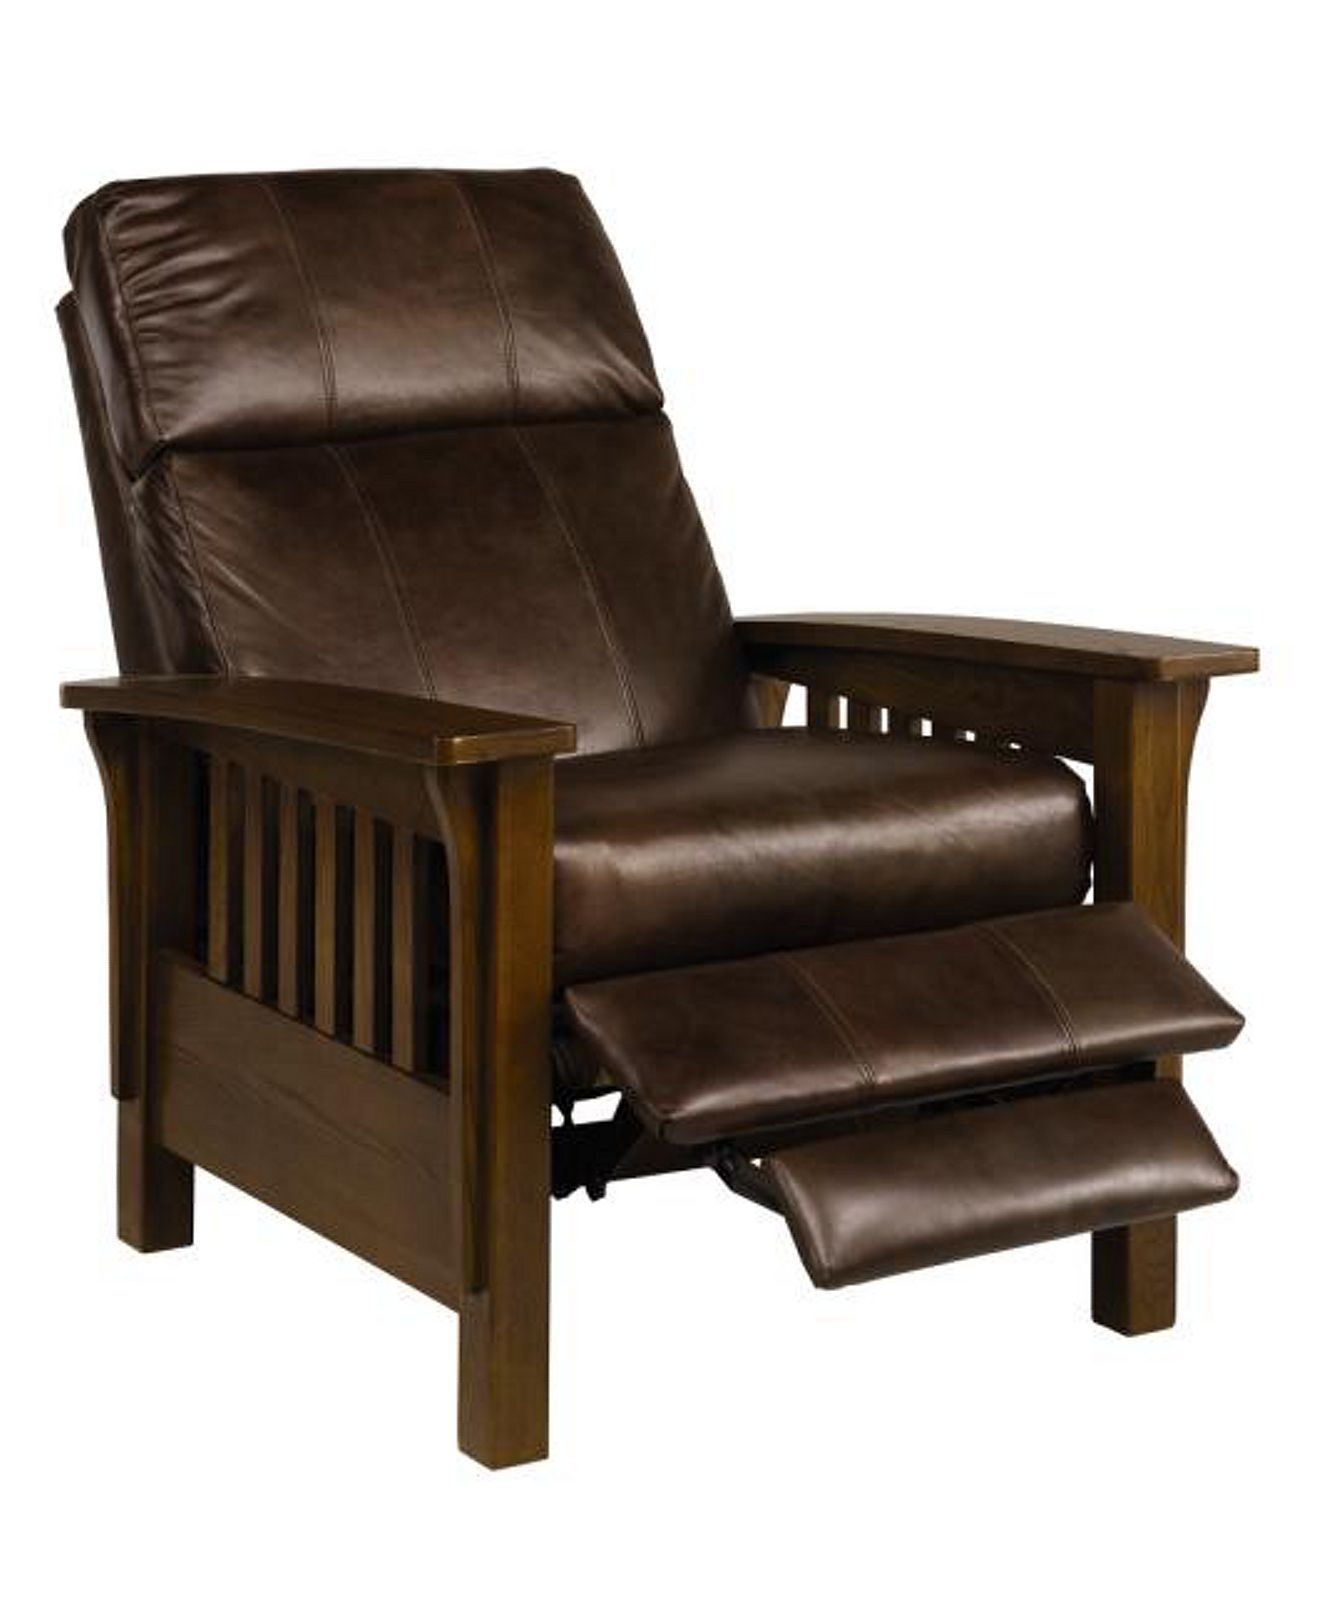 Brilliant Nicolas Ii Mission Style Leather Recliner Chair 33W X 40D Unemploymentrelief Wooden Chair Designs For Living Room Unemploymentrelieforg